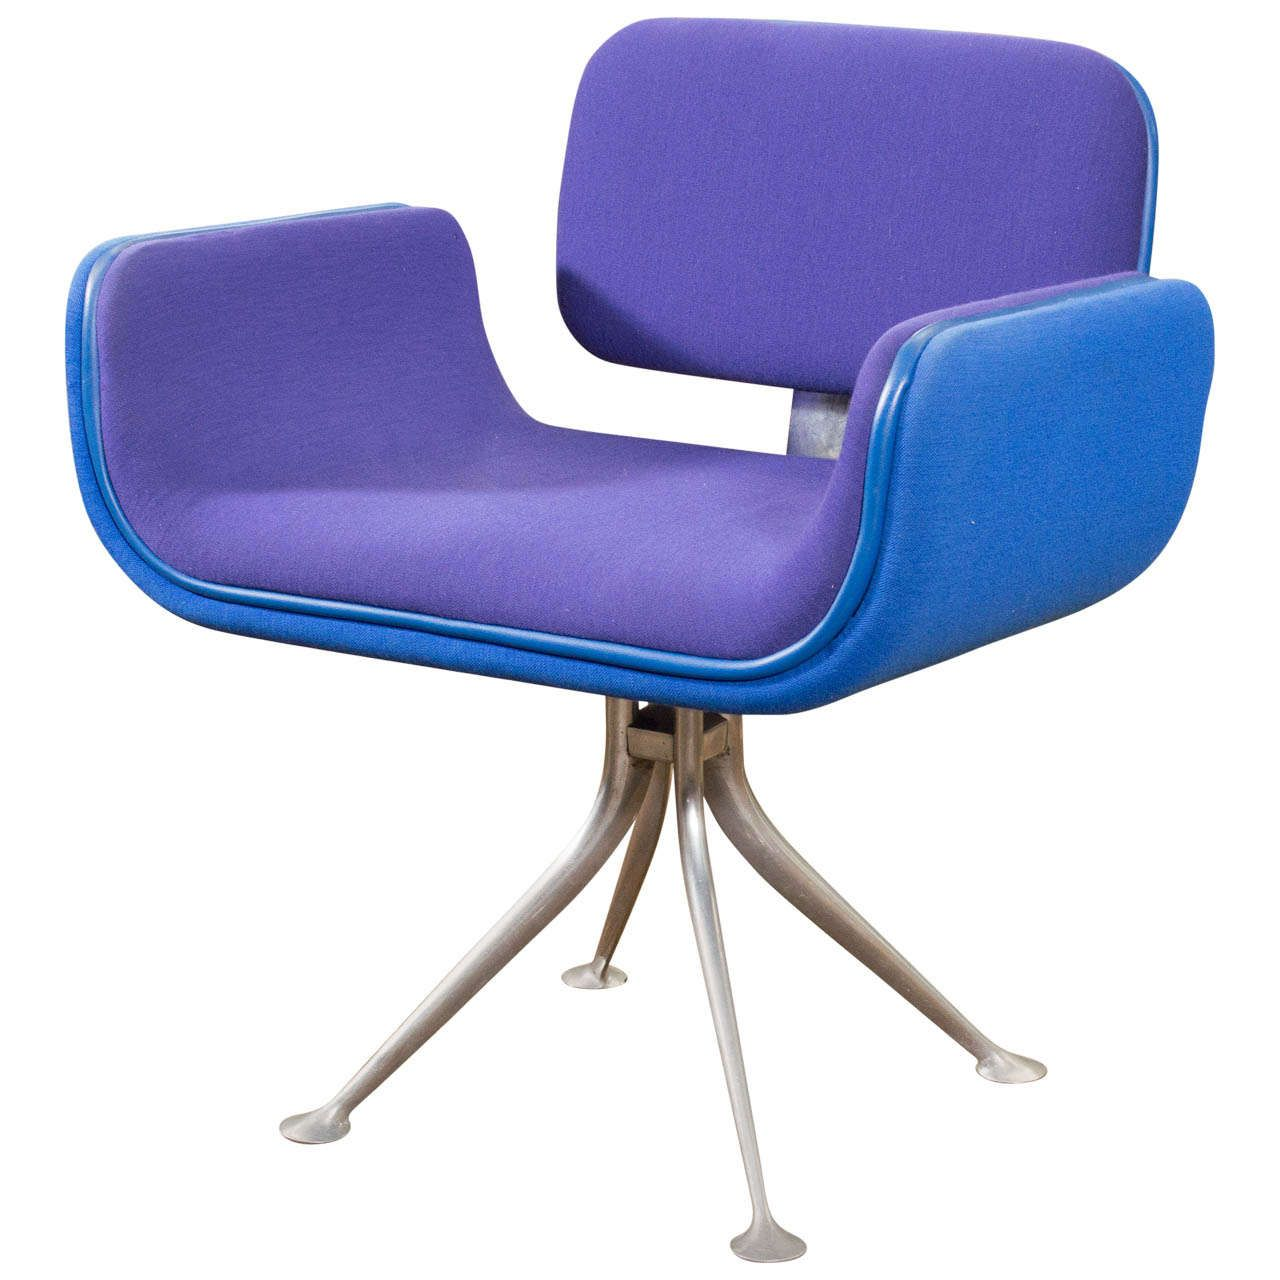 Alexander Girard Armchair From A Unique Collection Of